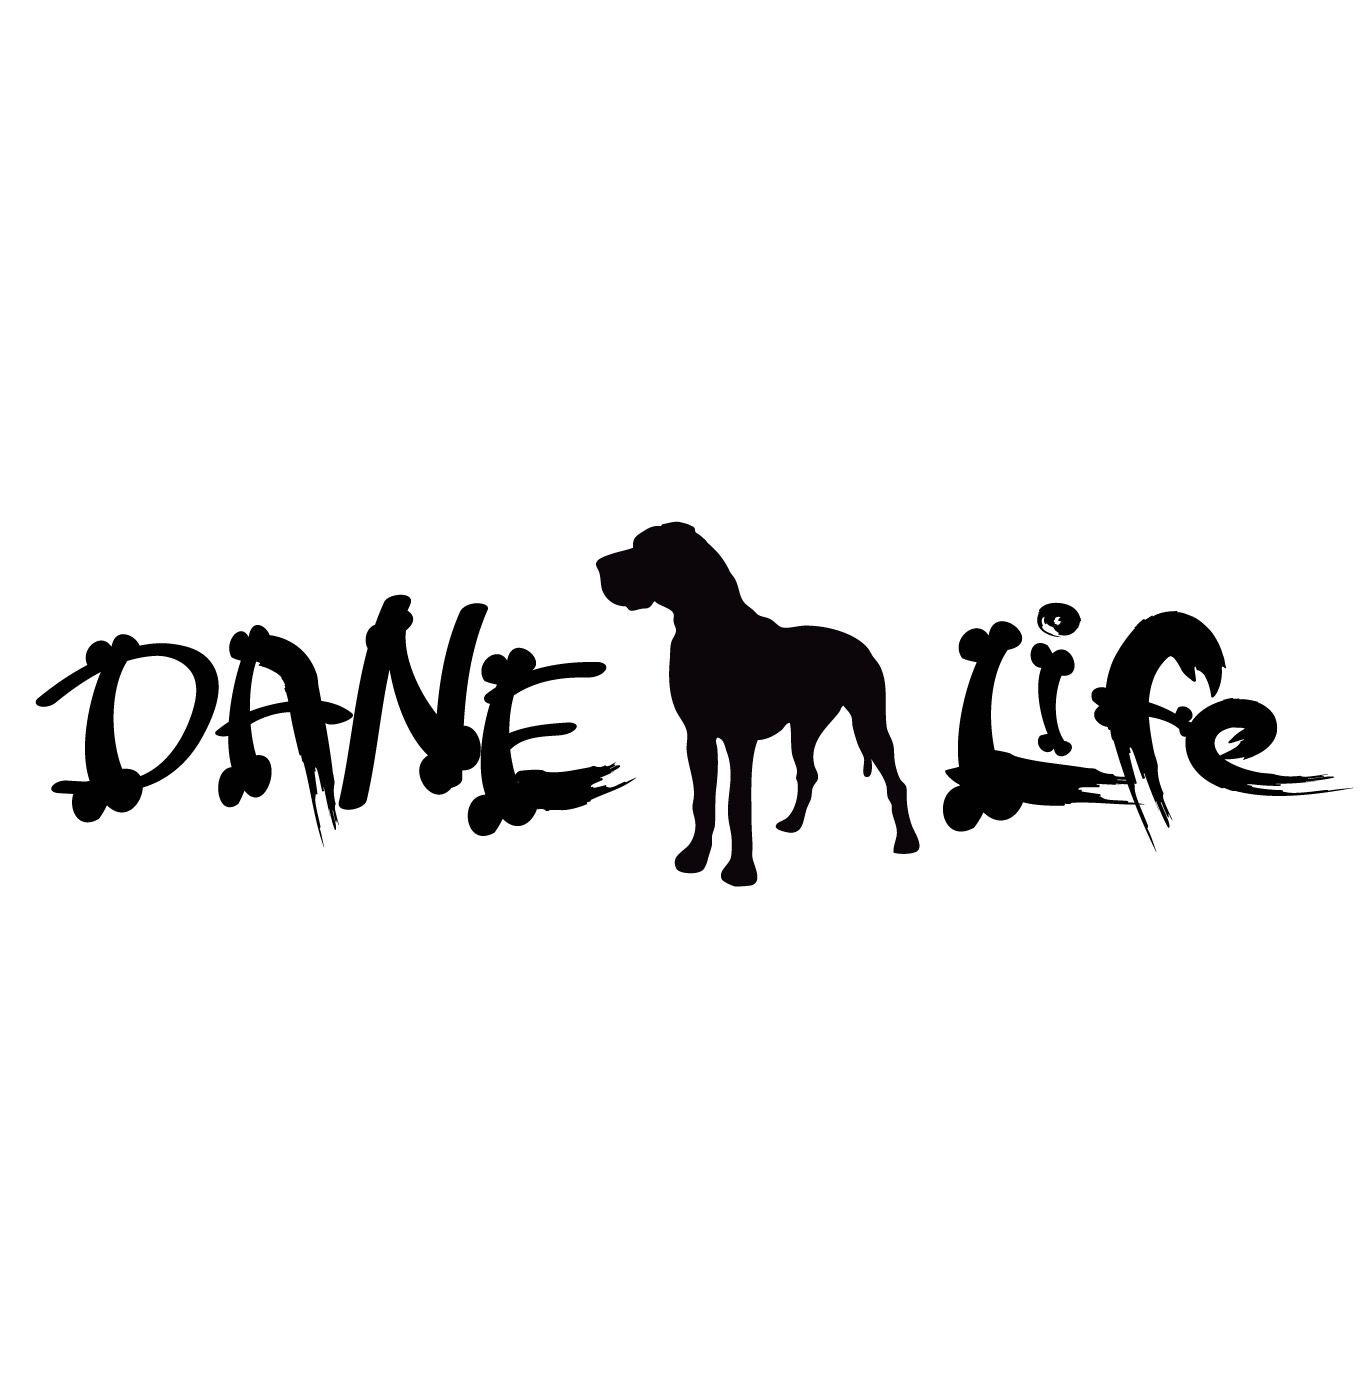 This Vinyl Decal Quot Dane Life Uncropped Quot Is Great For Your